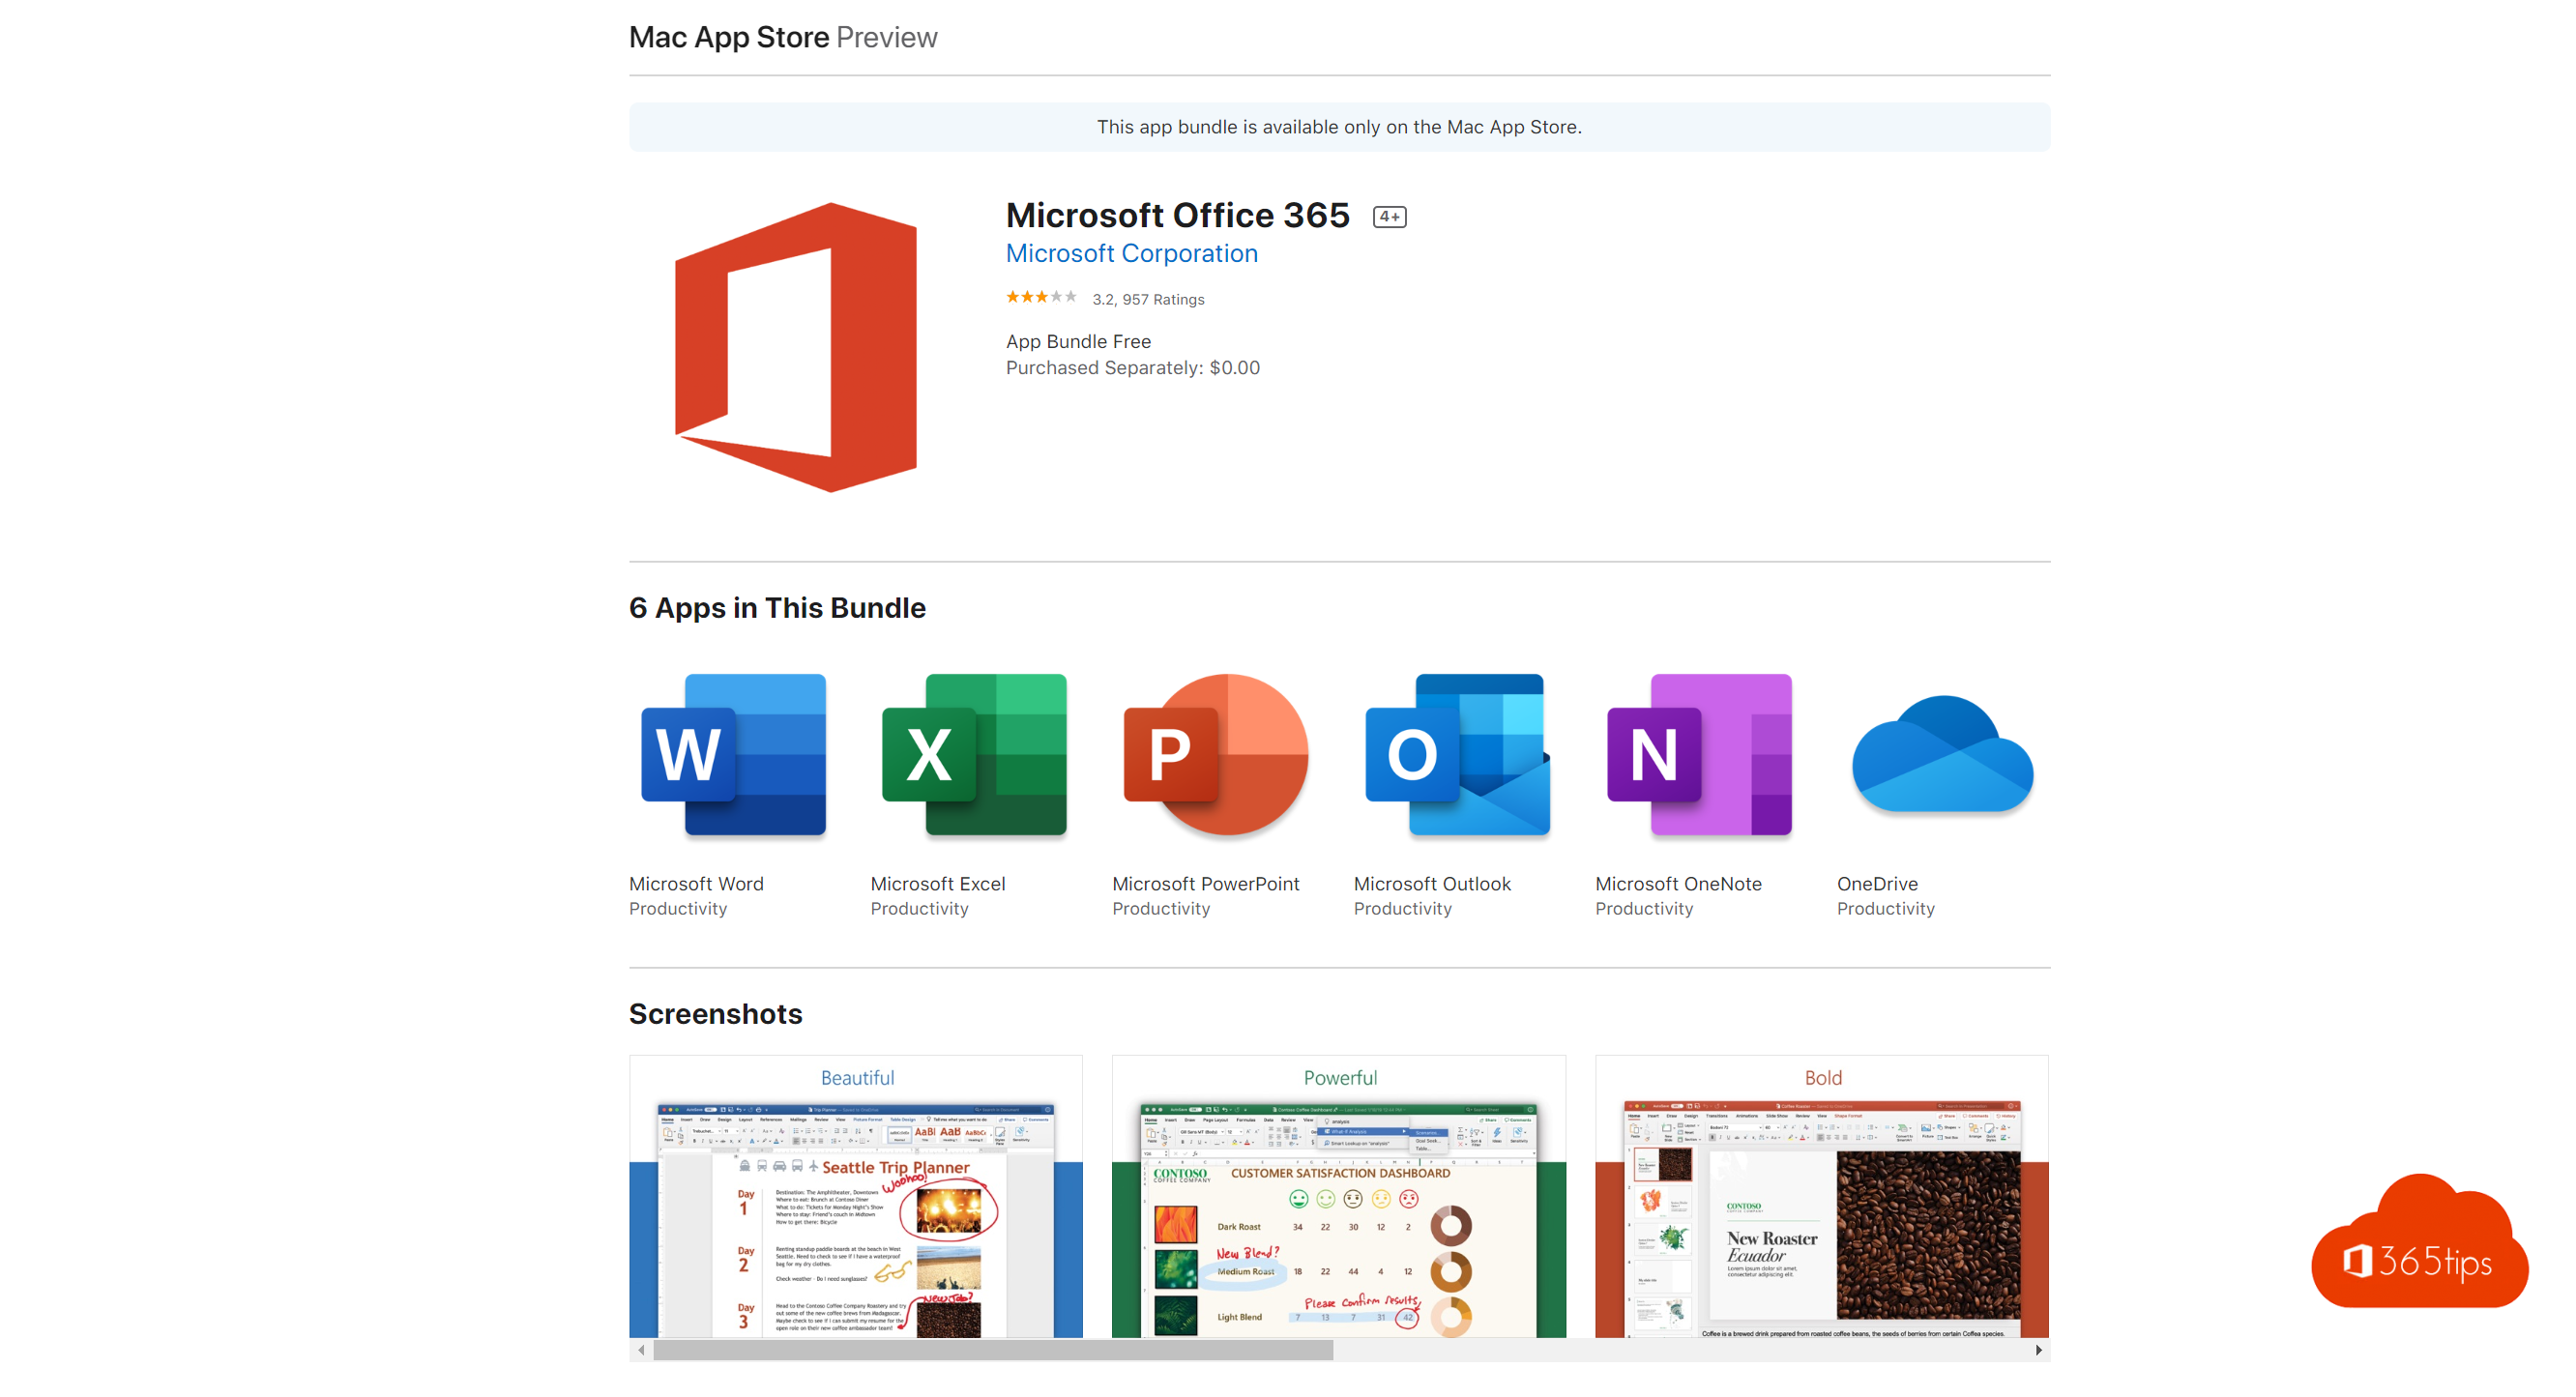 Microsoft Office 365 Preview iOS